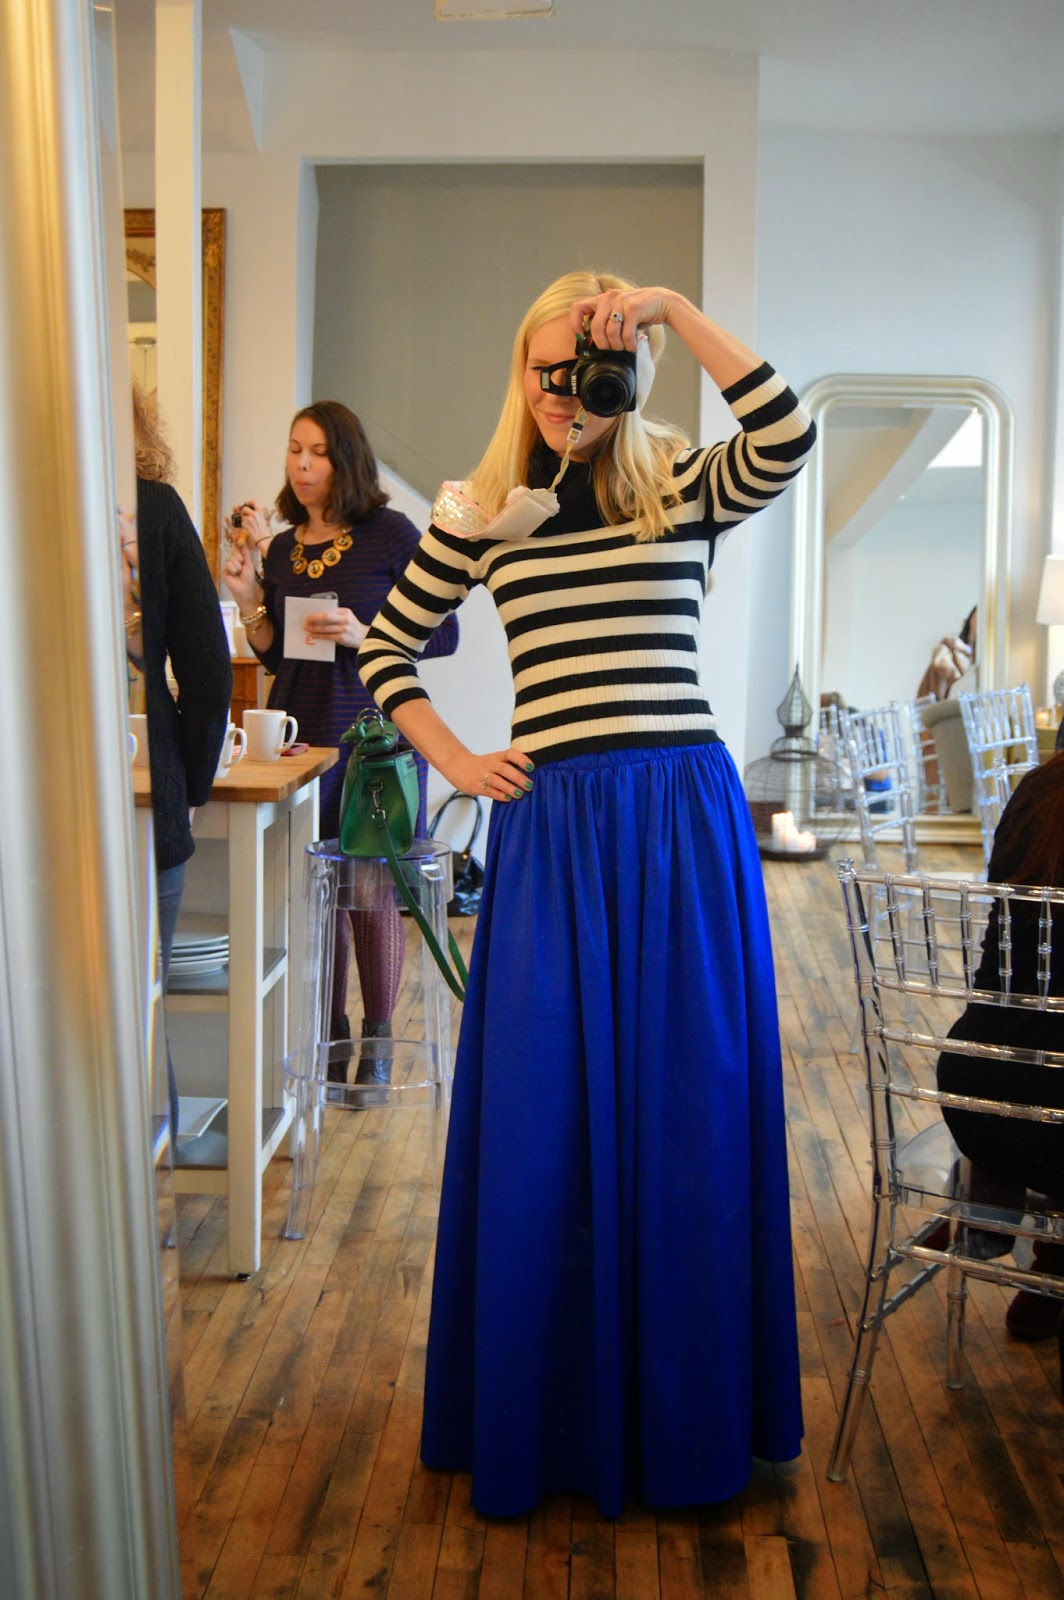 Royal blue maxi skirt with black & white cowl sweater